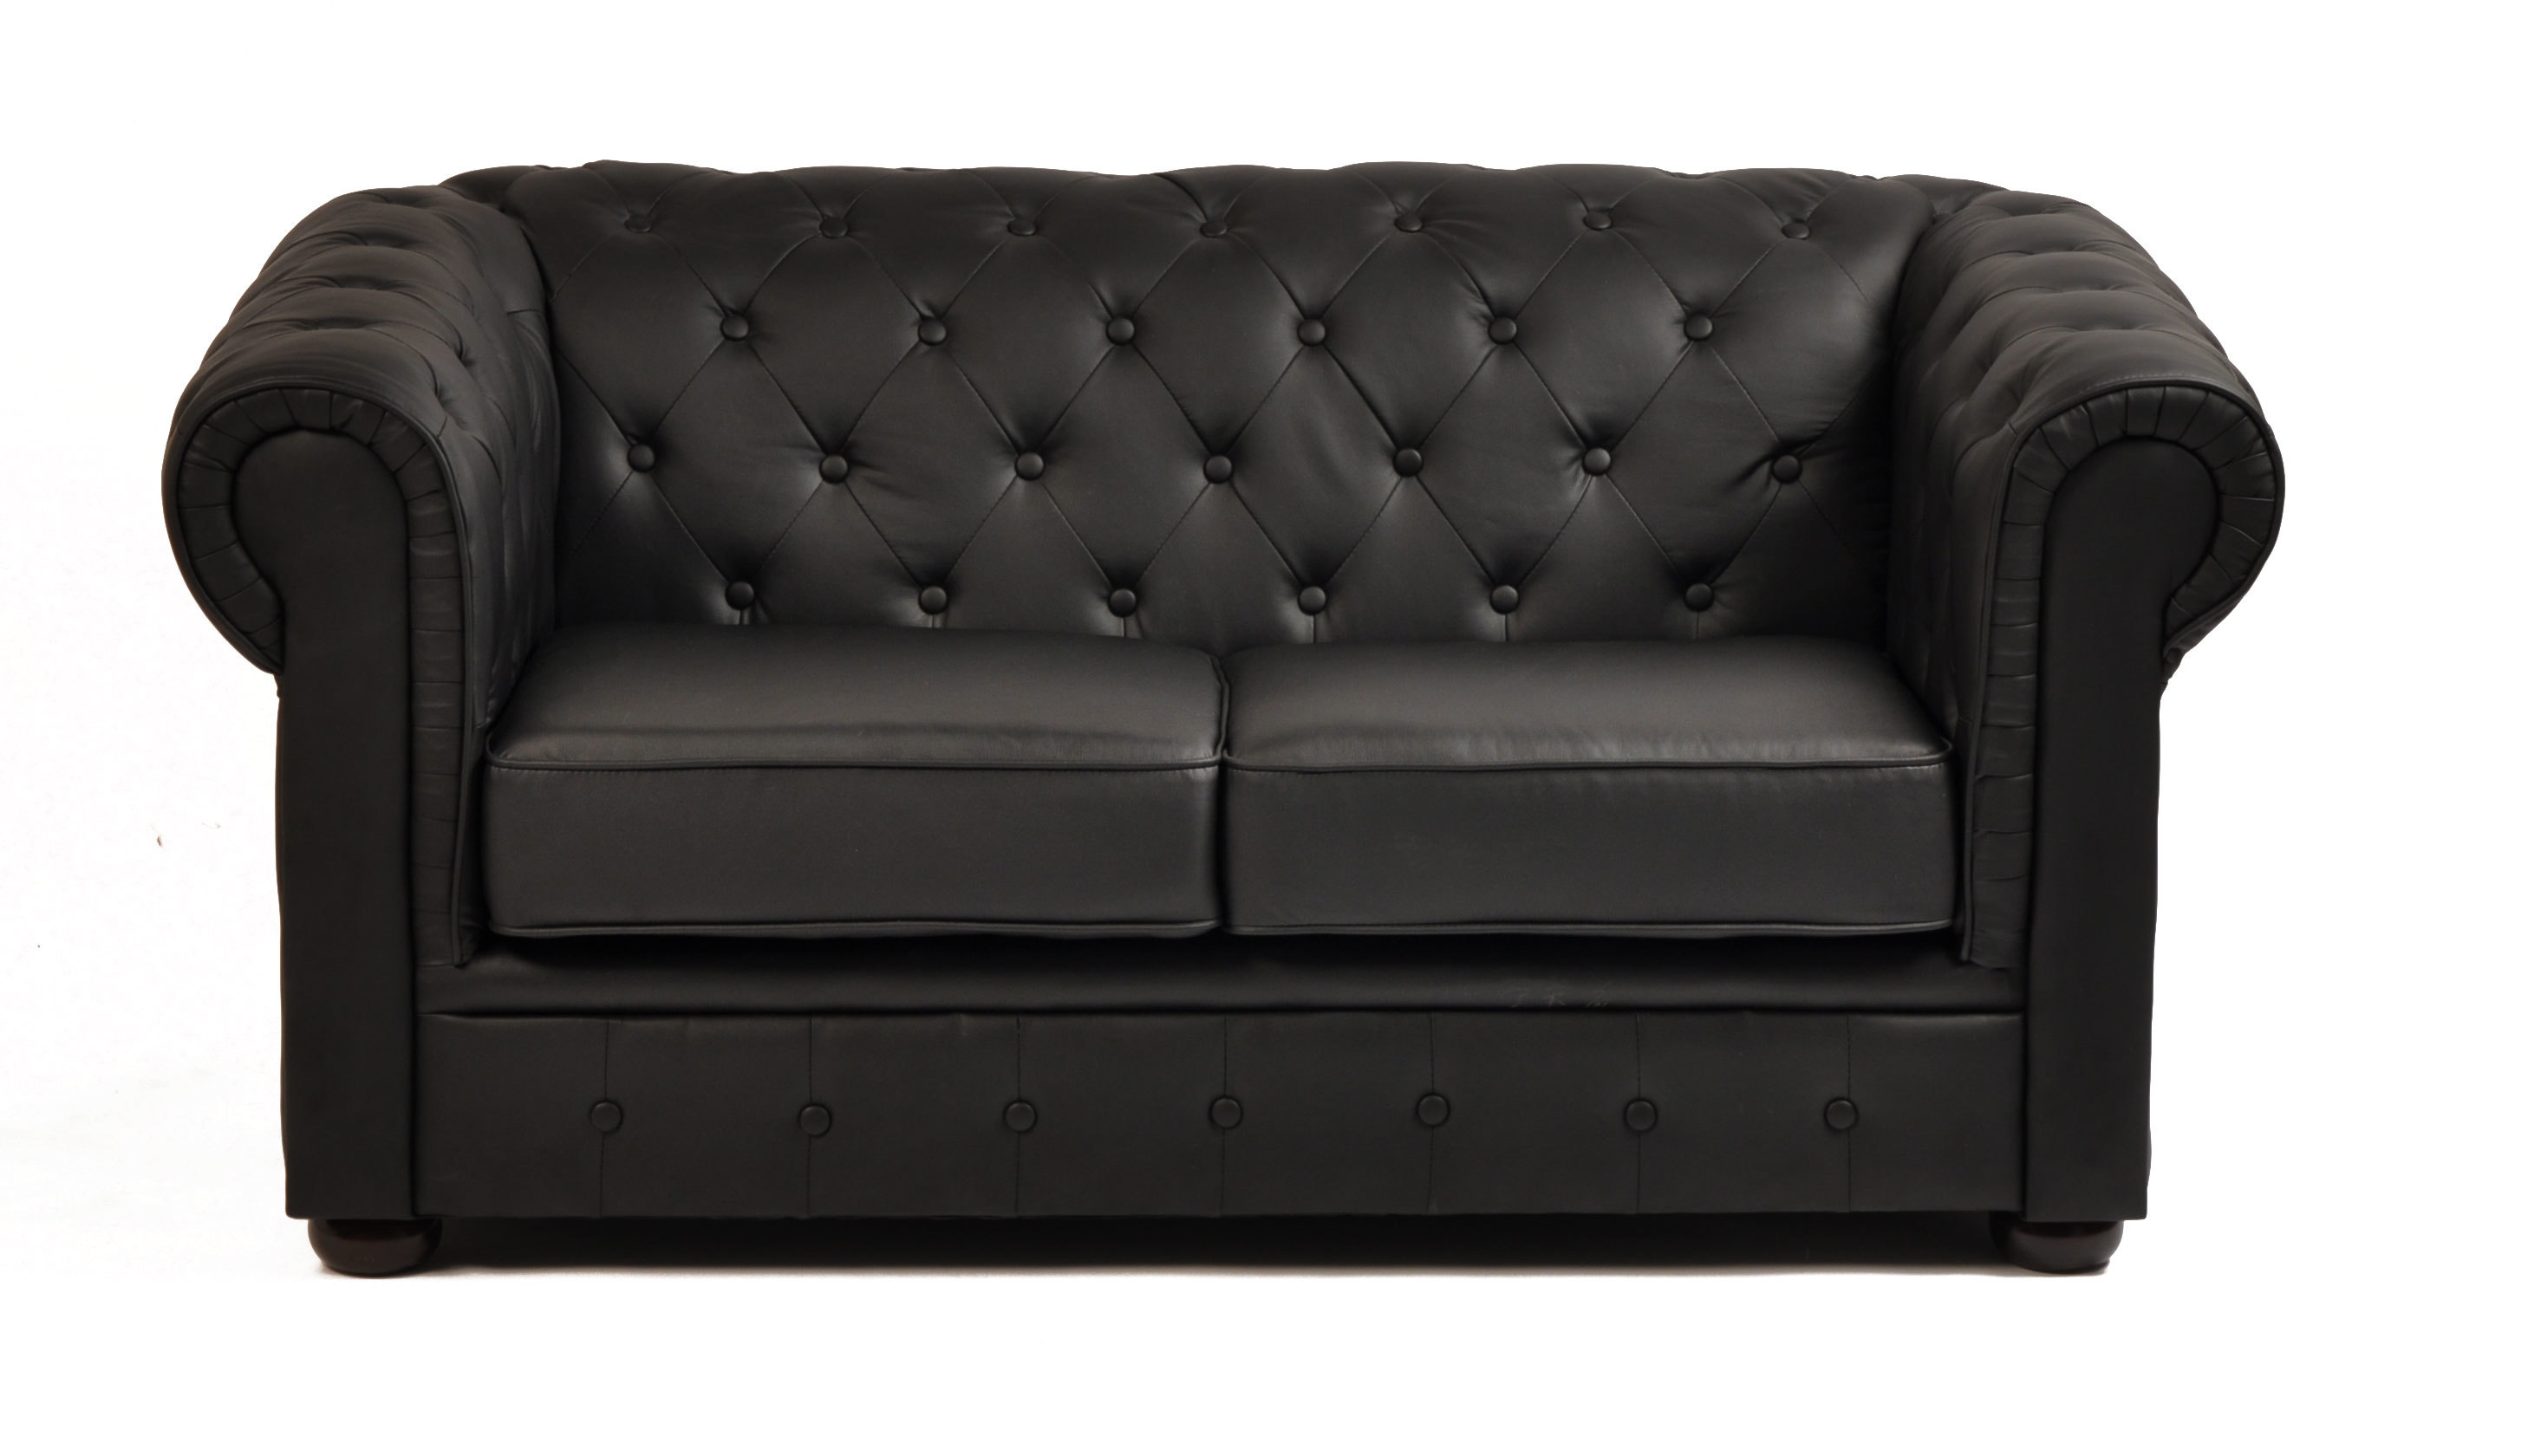 Canapé Chesterfield 2 Places Canapé Chesterfield Noir 2 Places Miliboo